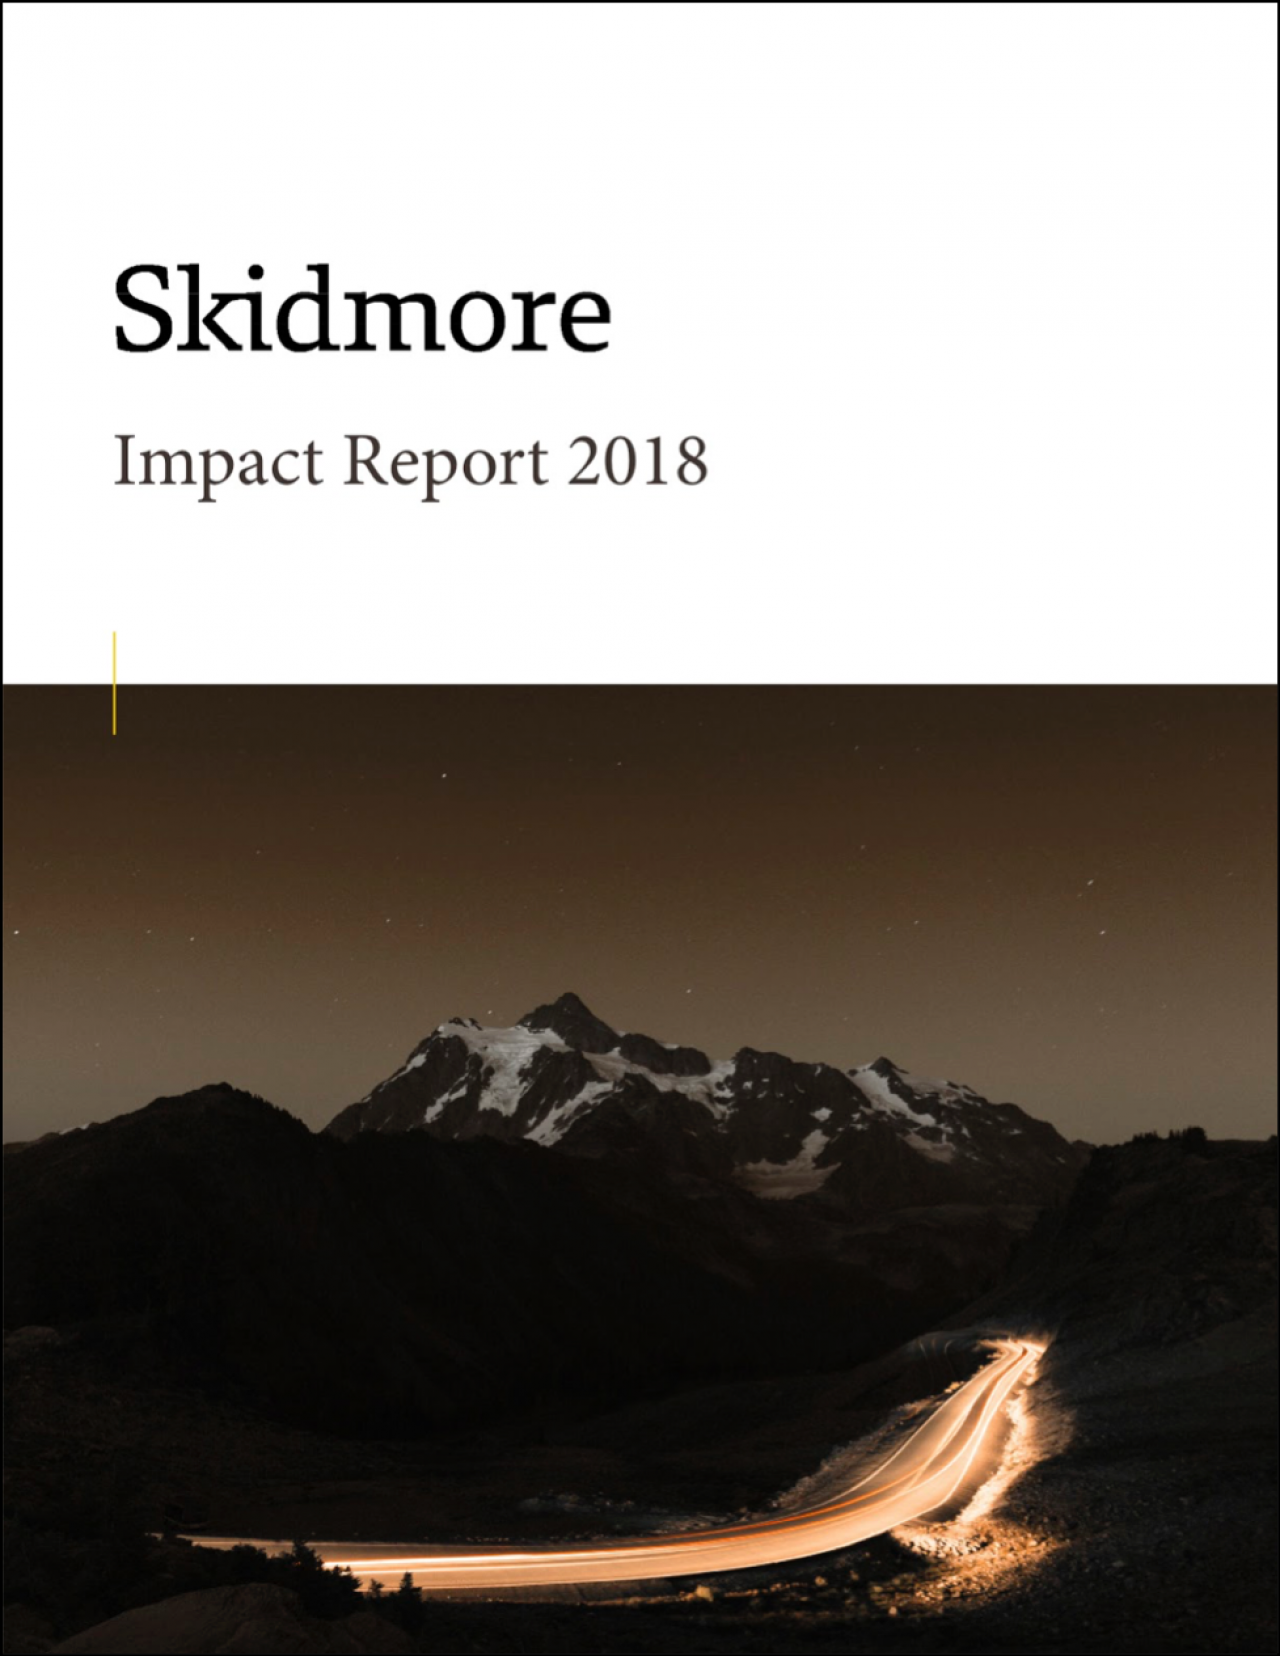 Skidmore Impact Report 2018 With Outline